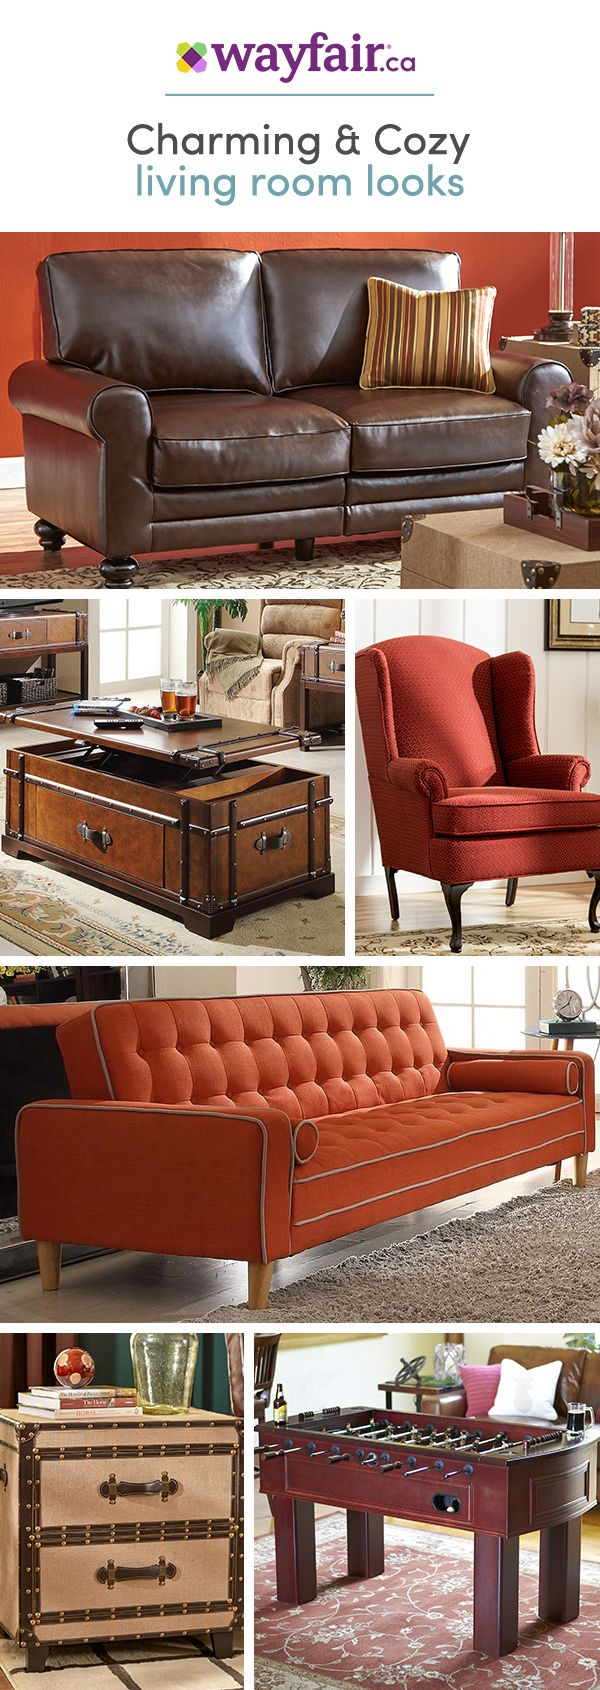 Sit back and save! We've got everything you need to bring that much-needed spice into your living area - accent chairs, sofas, loveseats, and more for any style. Get access to exclusive deals at up to 70% OFF and enjoy FREE SHIPPING on all orders over $75 at Wayfair! Sign up and shop now!